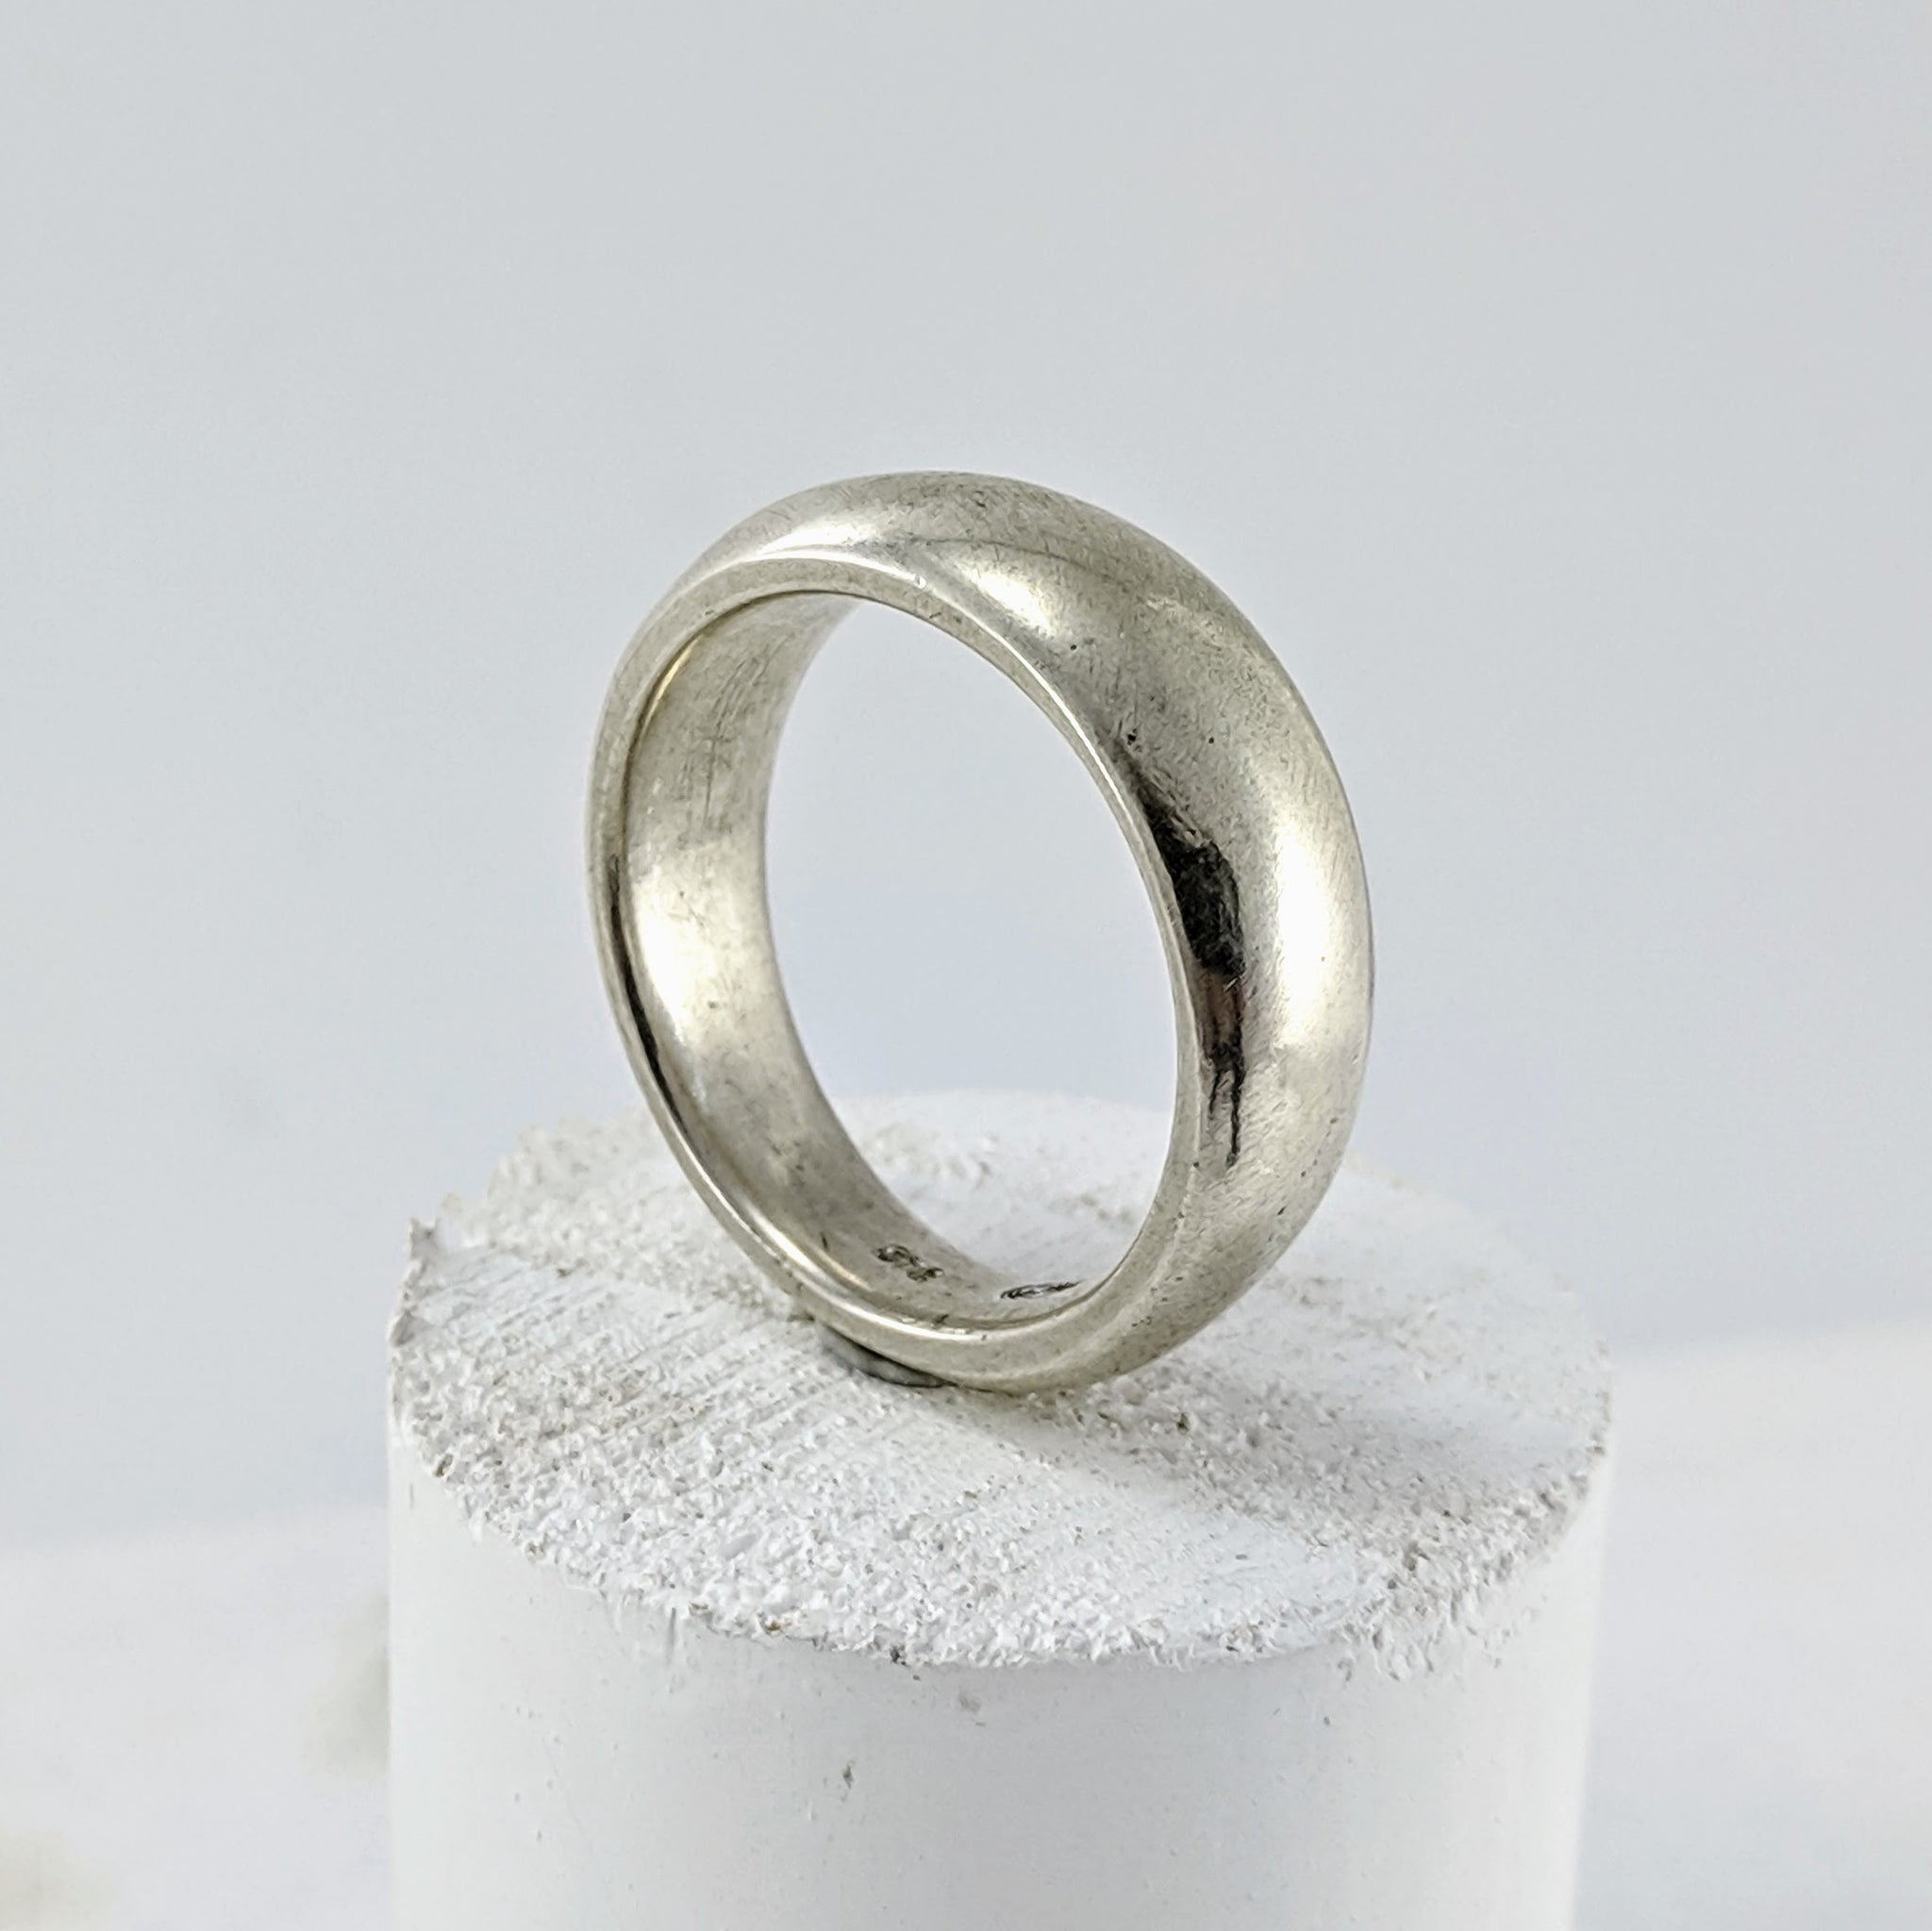 Solid silver ring by Buster Collins